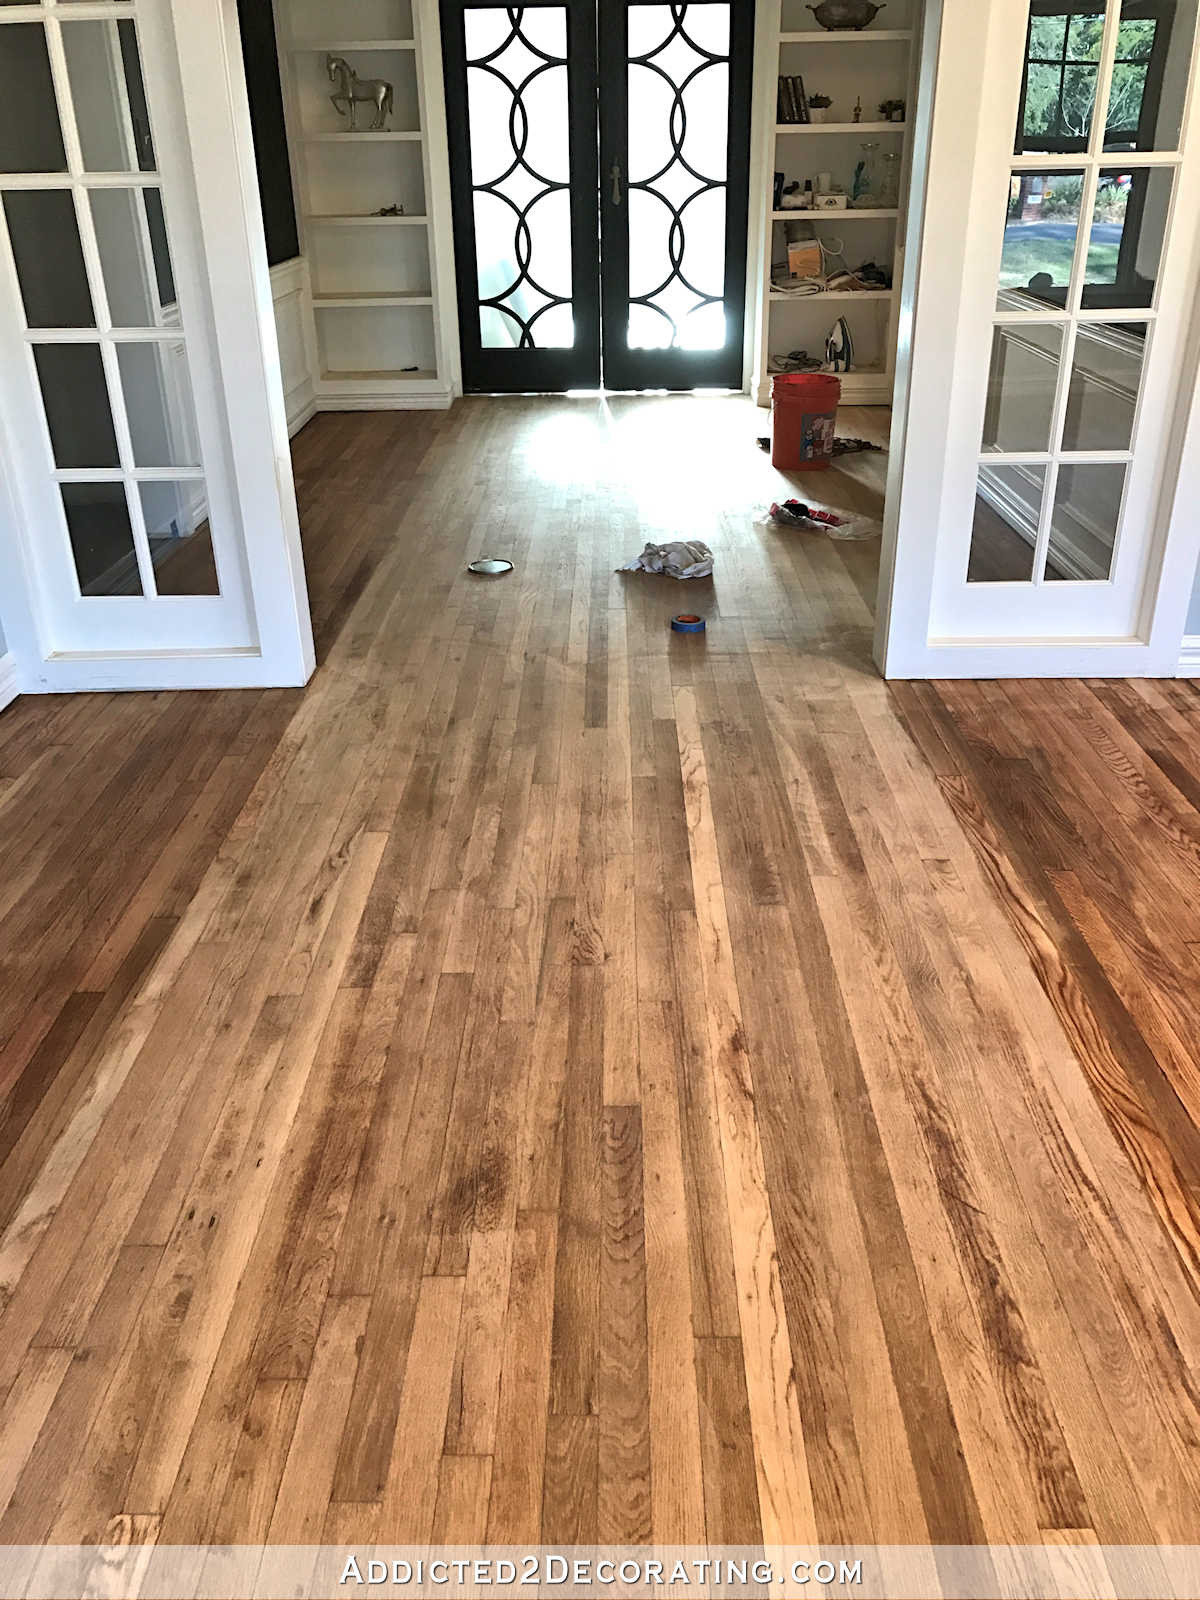 Hardwood Floor Installation Cost Of Adventures In Staining My Red Oak Hardwood Floors Products Process with Regard to Staining Red Oak Hardwood Floors 5 Music Room Wood Conditioner